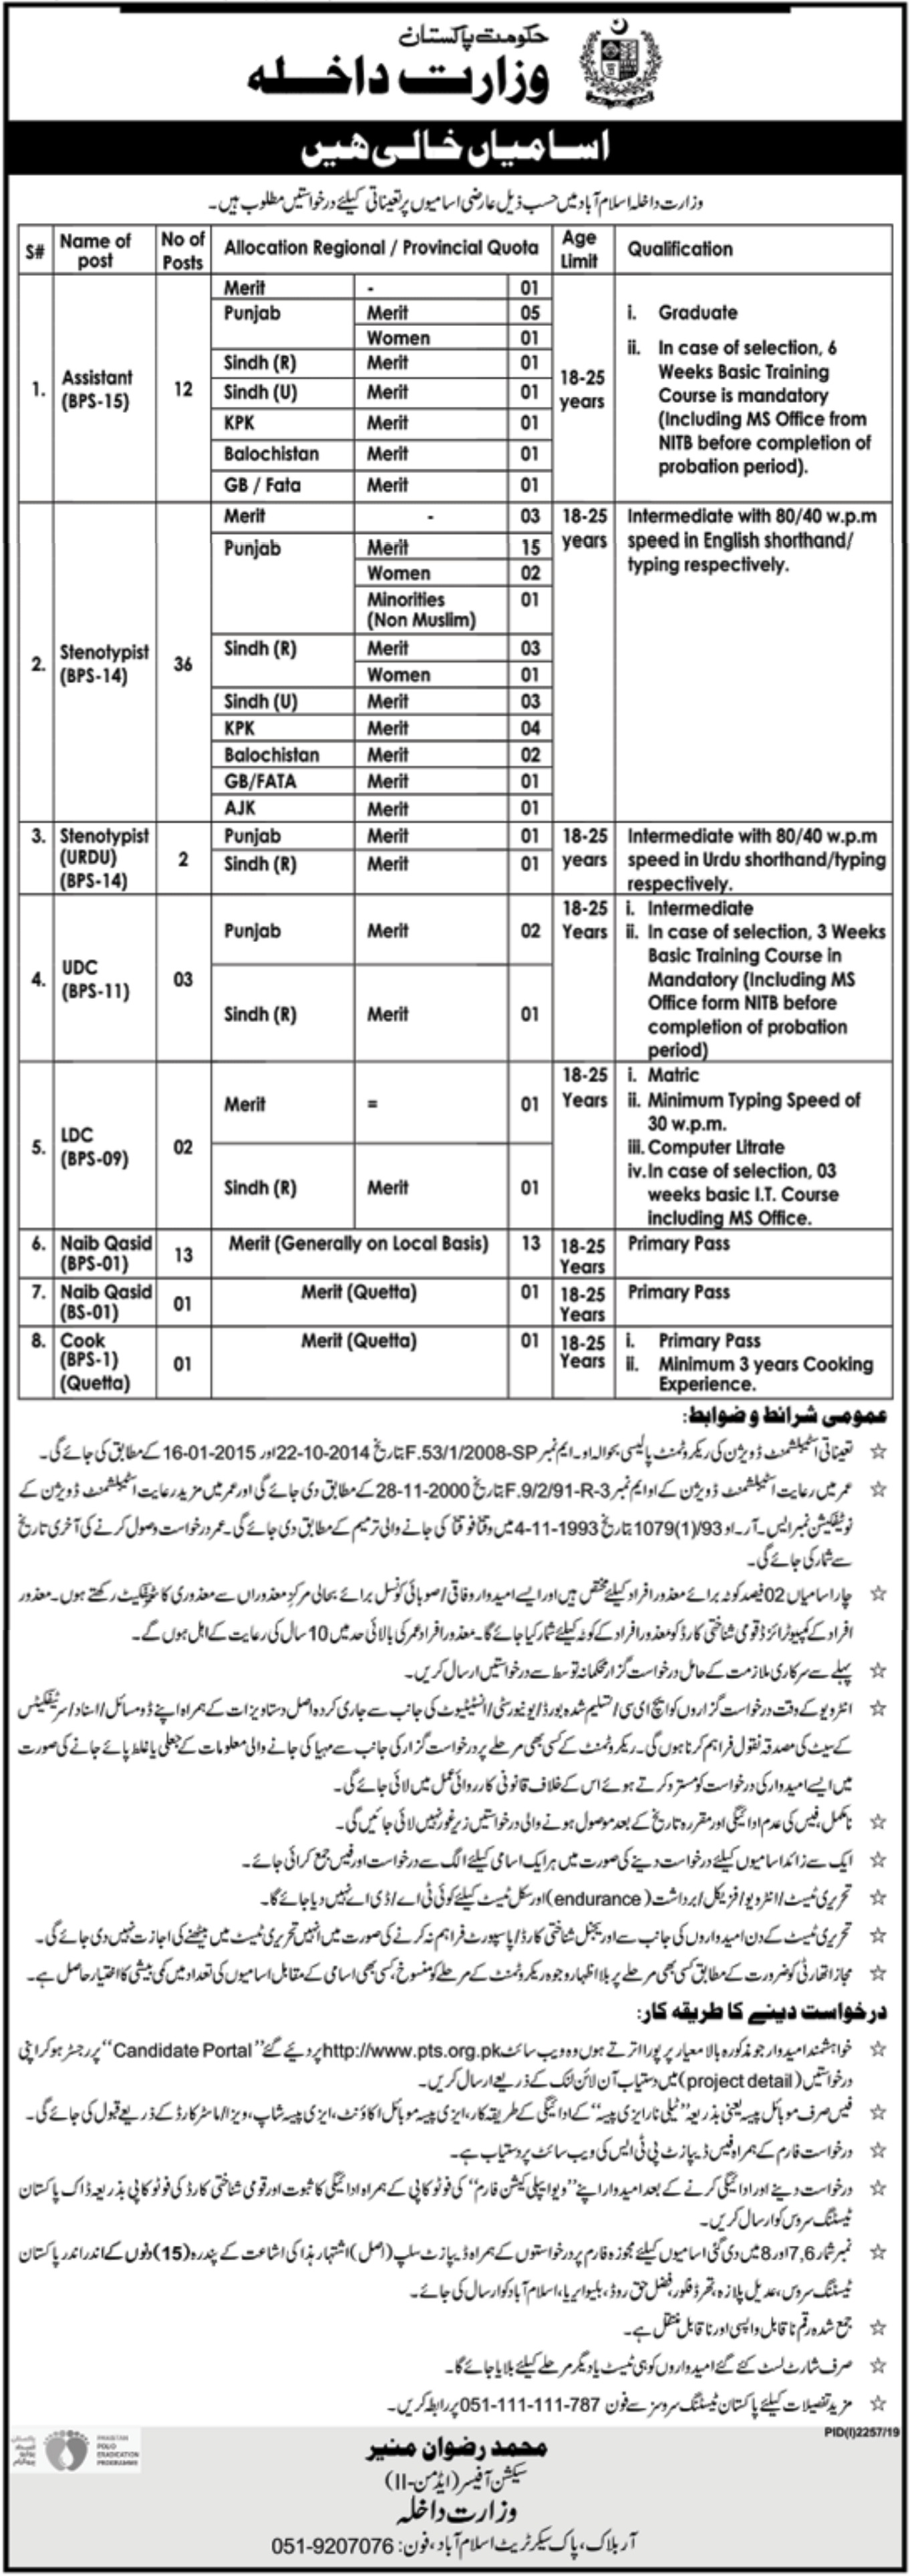 Ministry of Interior Jobs 2019 Apply through PTS